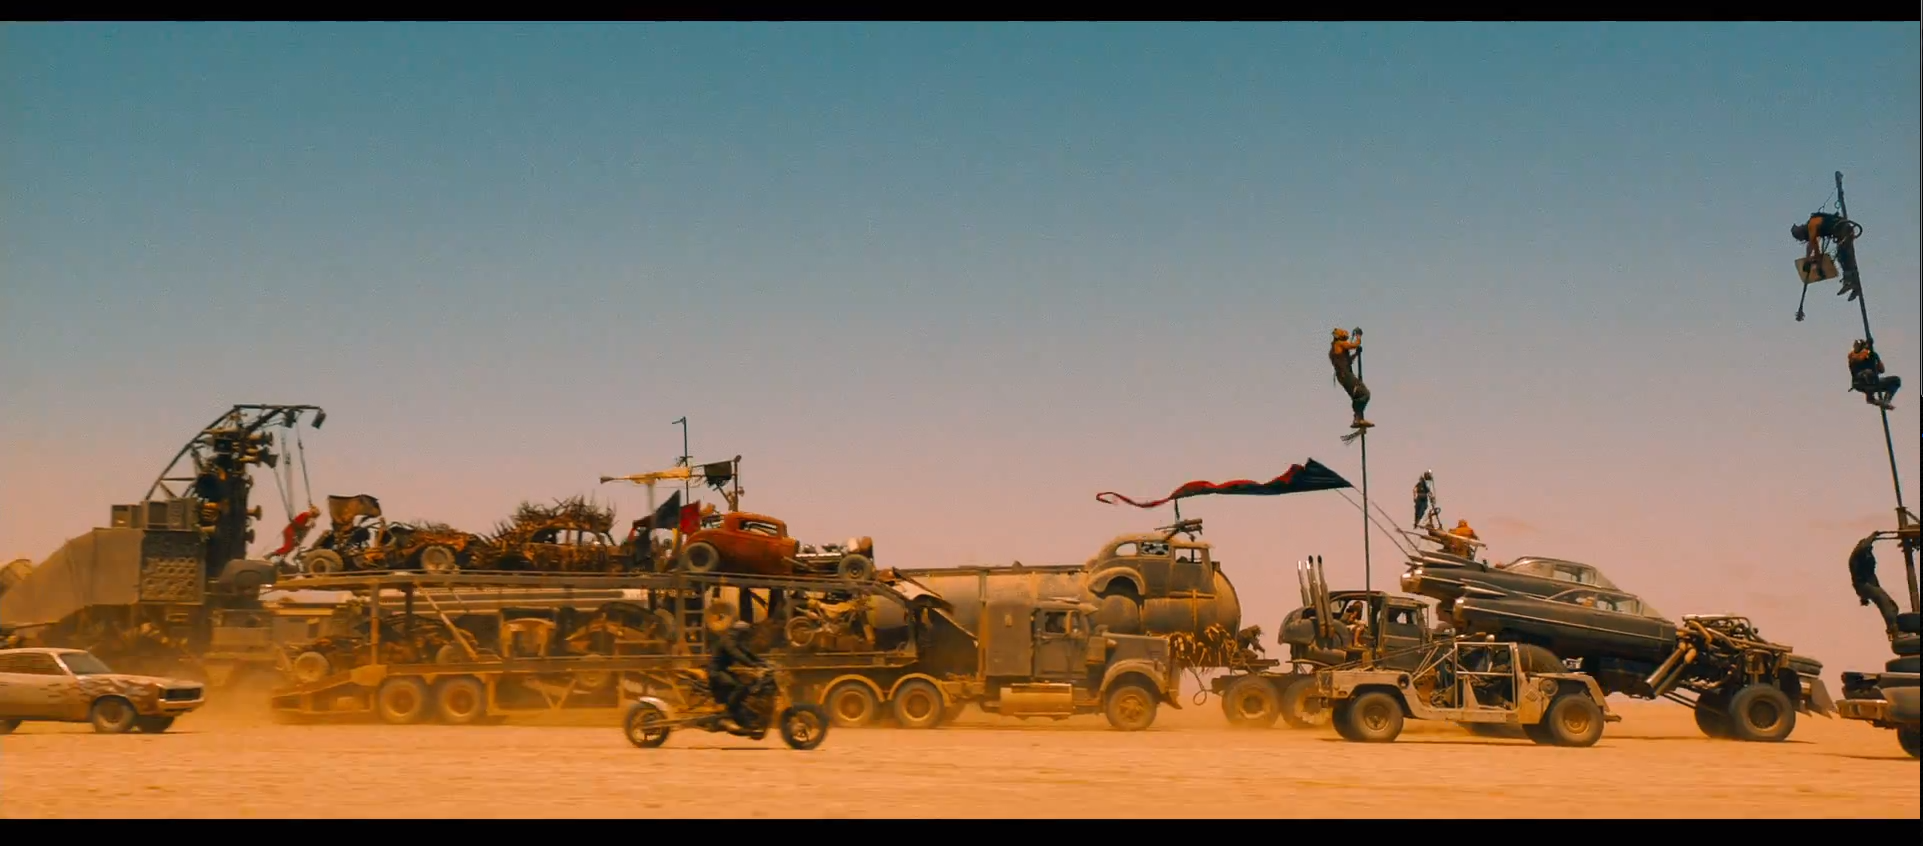 Mad Max 4 Fury Road Vehicles 5 By Maltian On Deviantart